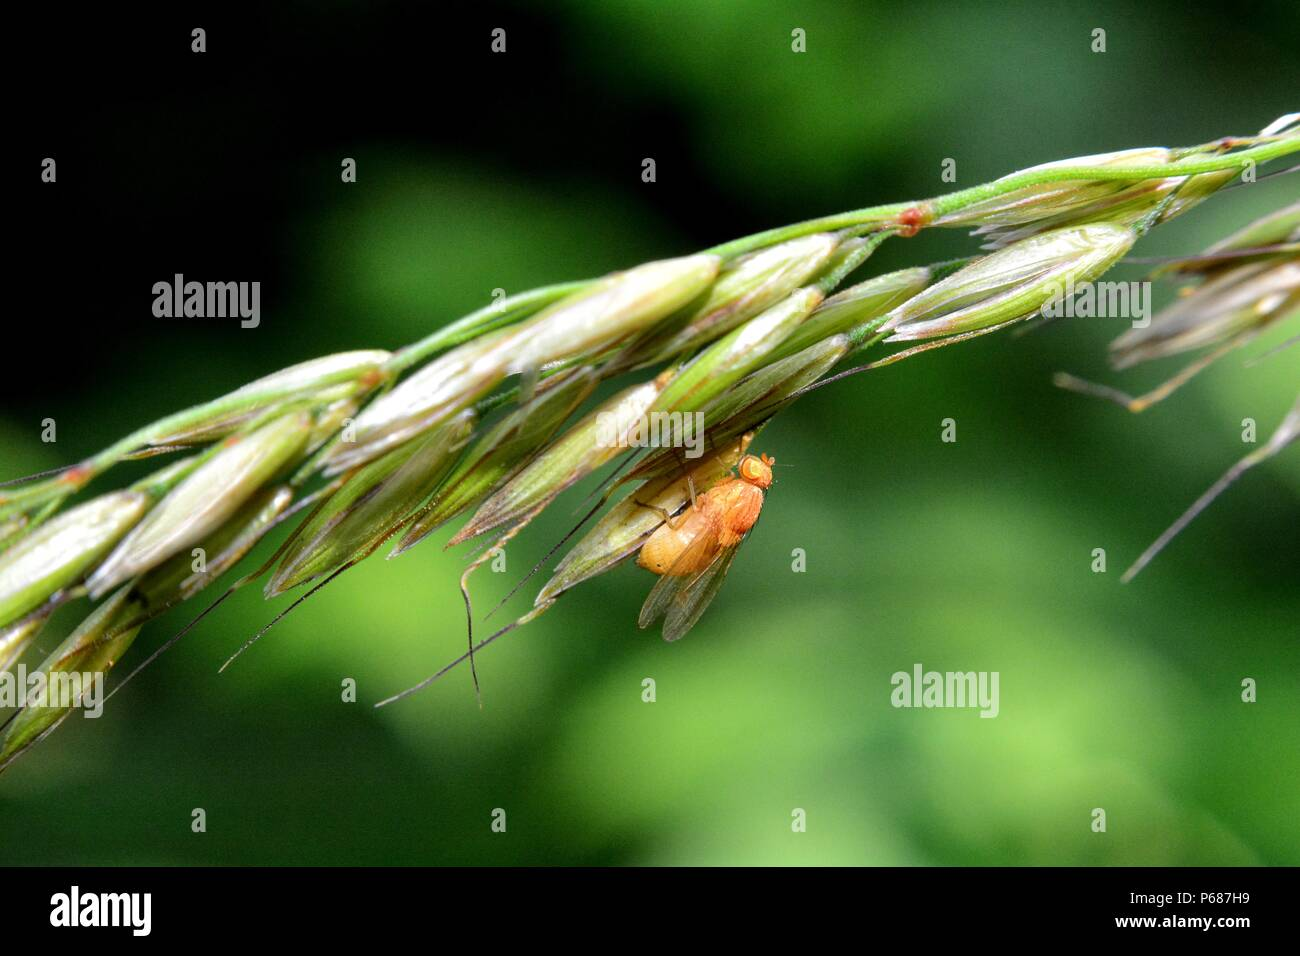 Drosophila Melanogaster   -   Fruit Fly in orange in nature Stock Photo